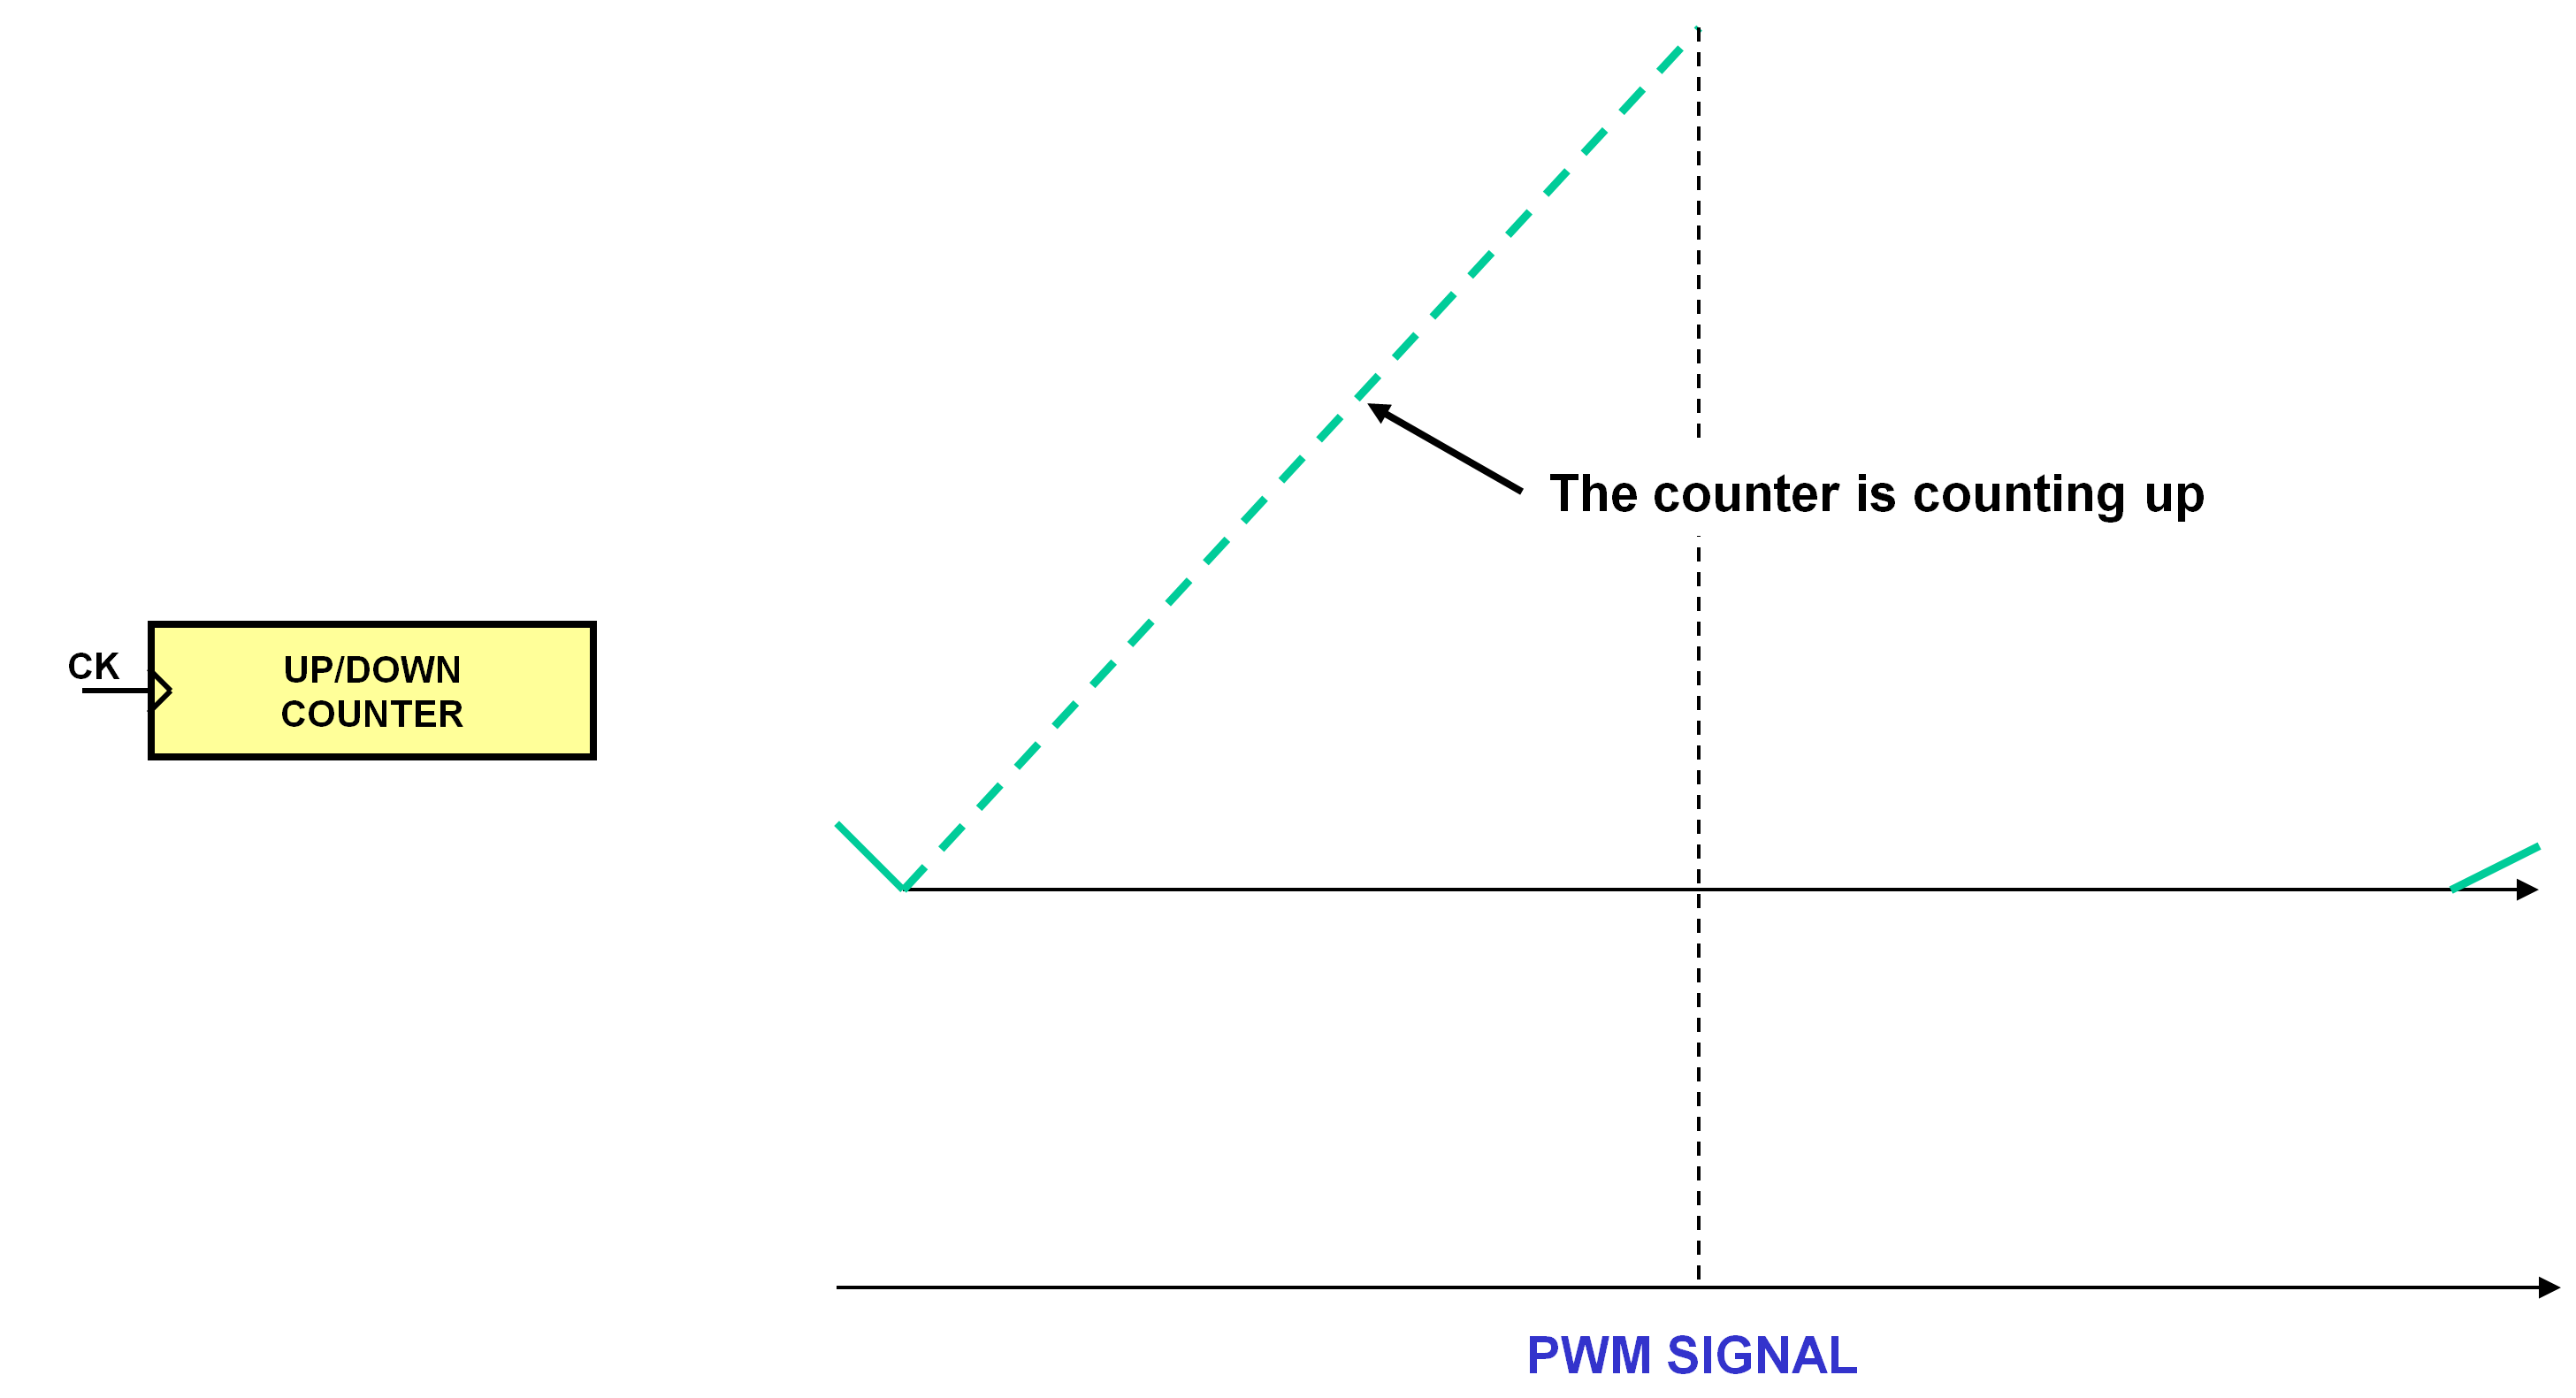 pwm-center-aligned.png